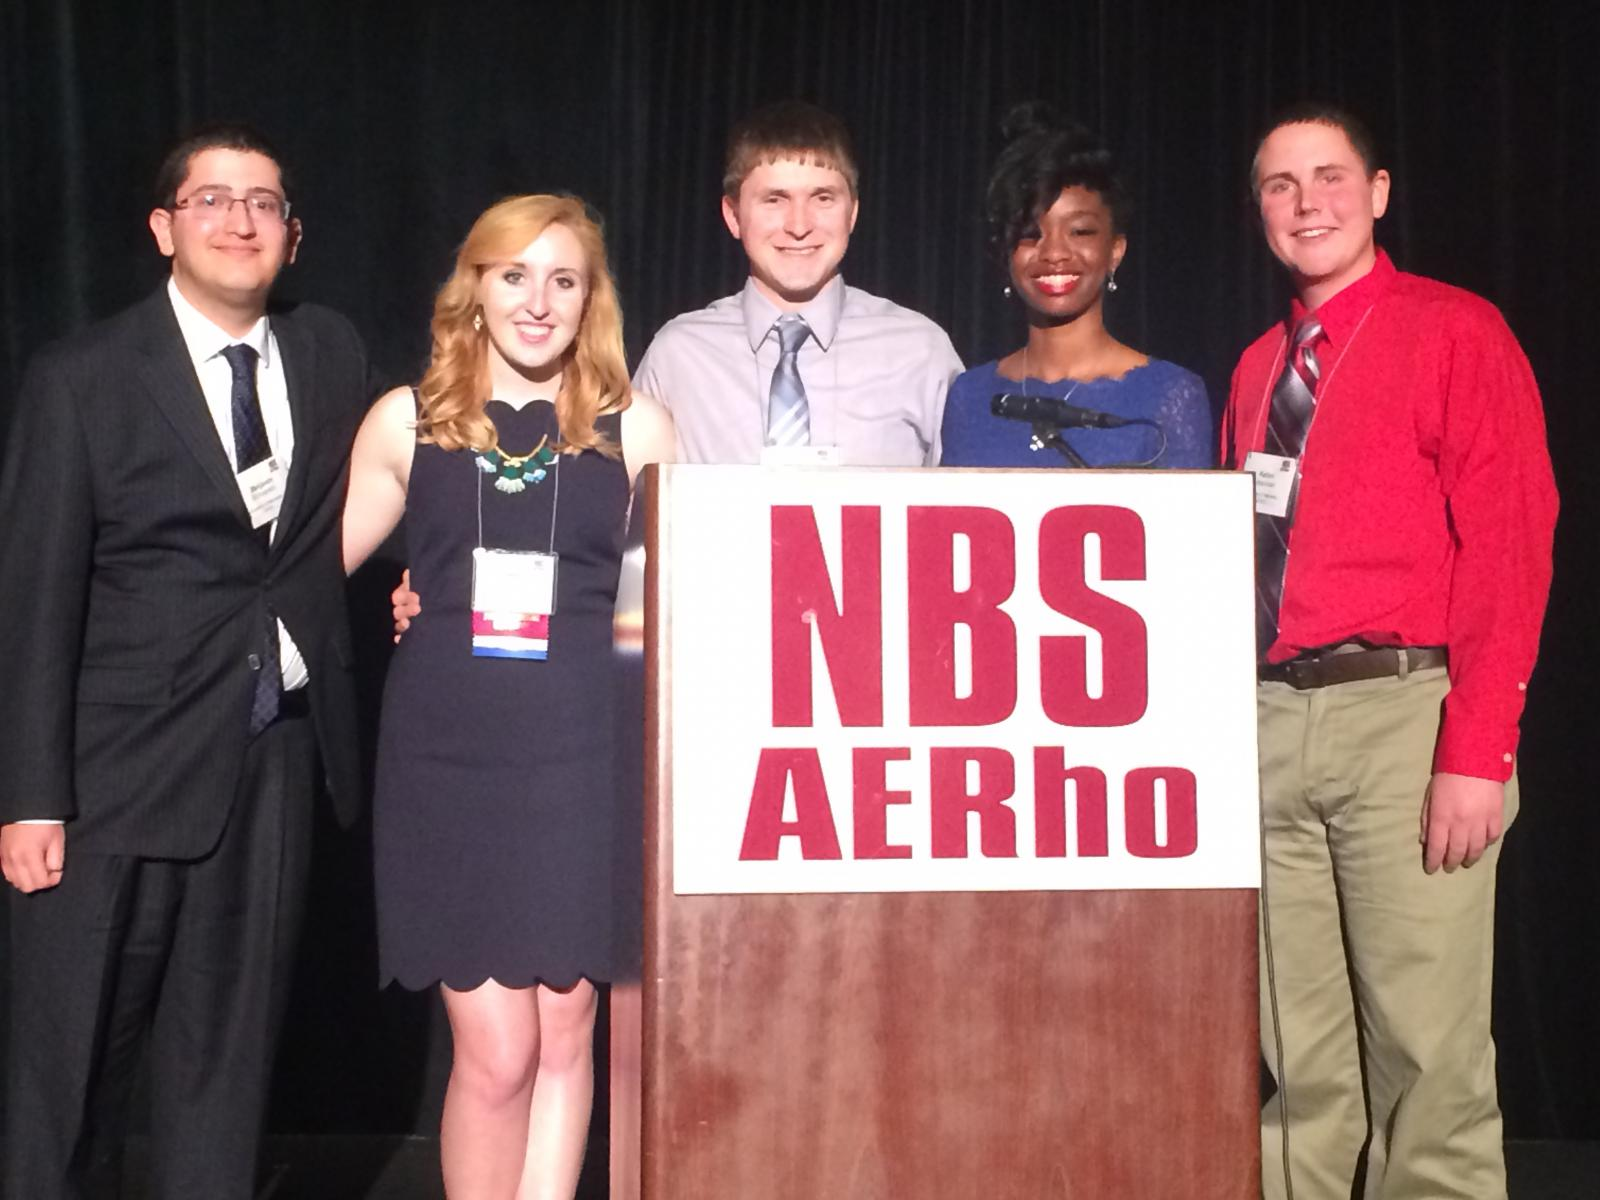 Members of NBS AERho at the 2015 convention in Burbank